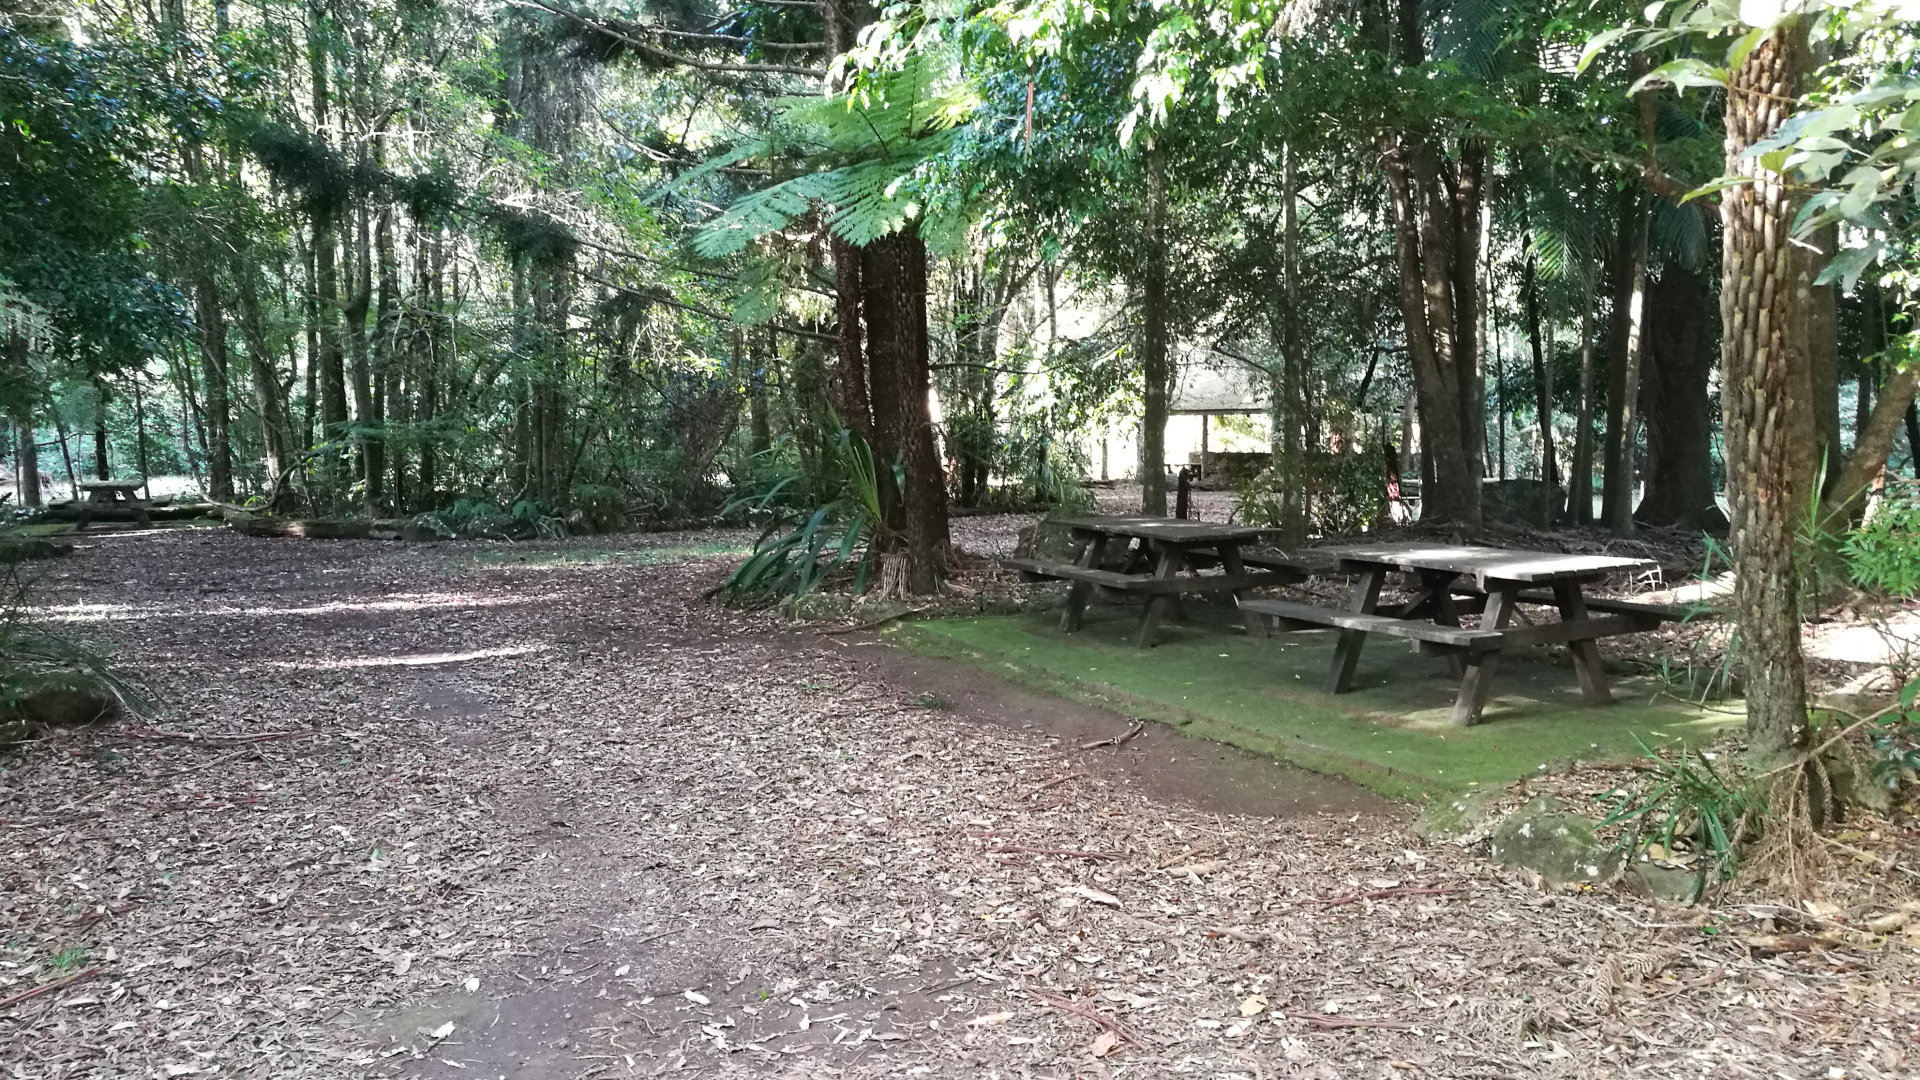 Picnic tables at the Gwongorella Picnic Area at Springbrook in the Gold Coast hinterland. It has picnic tables, free BBQs, and toilets, and a popular access point to Purling Brook Falls